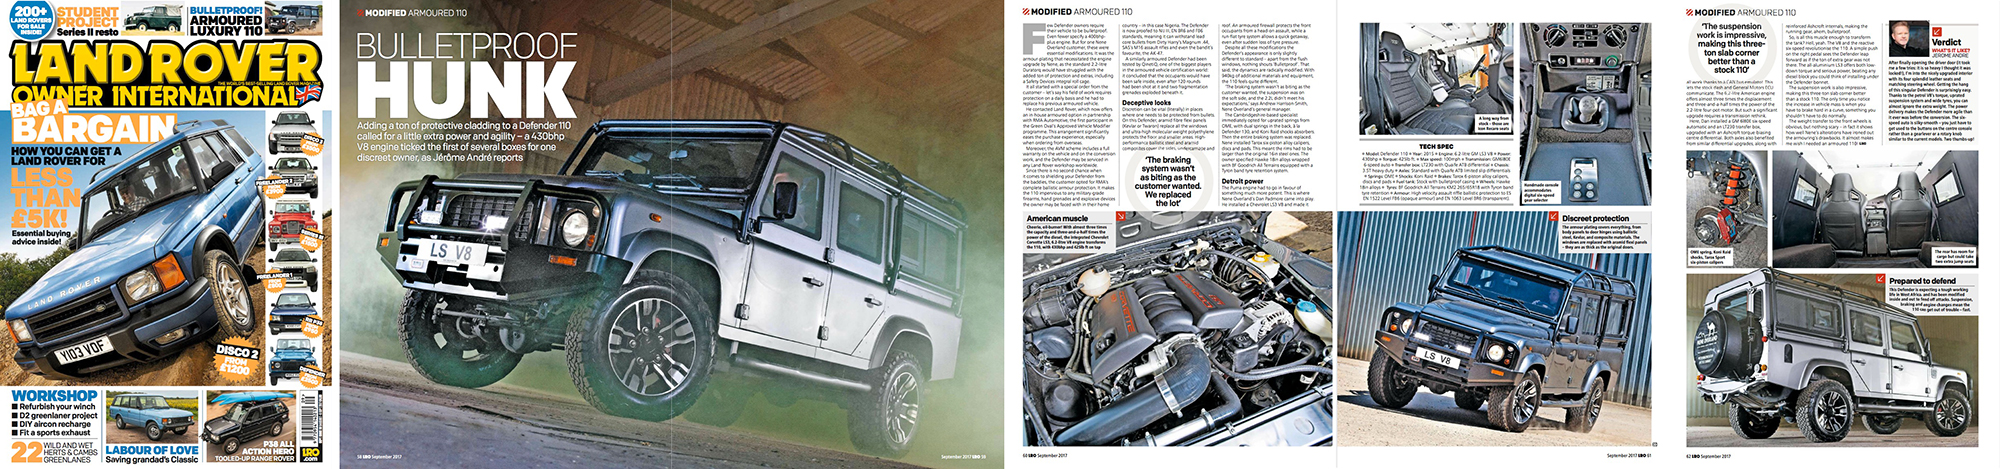 LRO-SEPT-2017-V8-DEFENDER